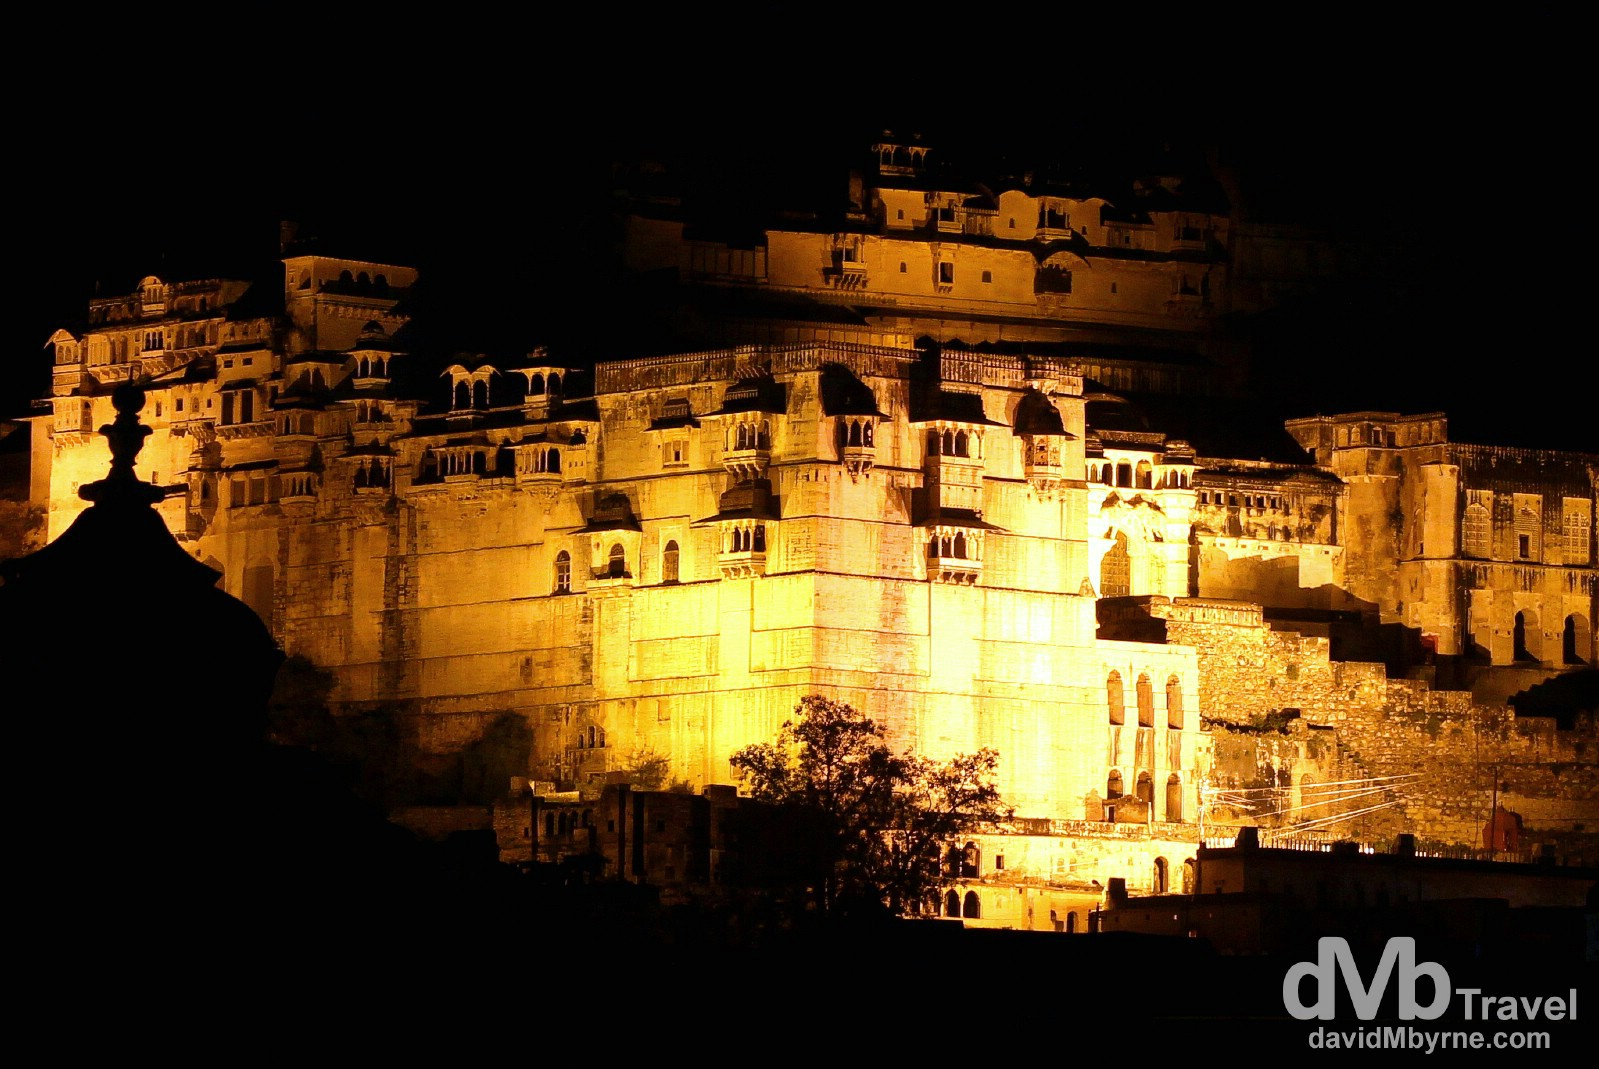 The imposing façade of Bundi Palace at night as seen from the rooftops of Old Town Bundi, Rajasthan, India. October 1st 2012.